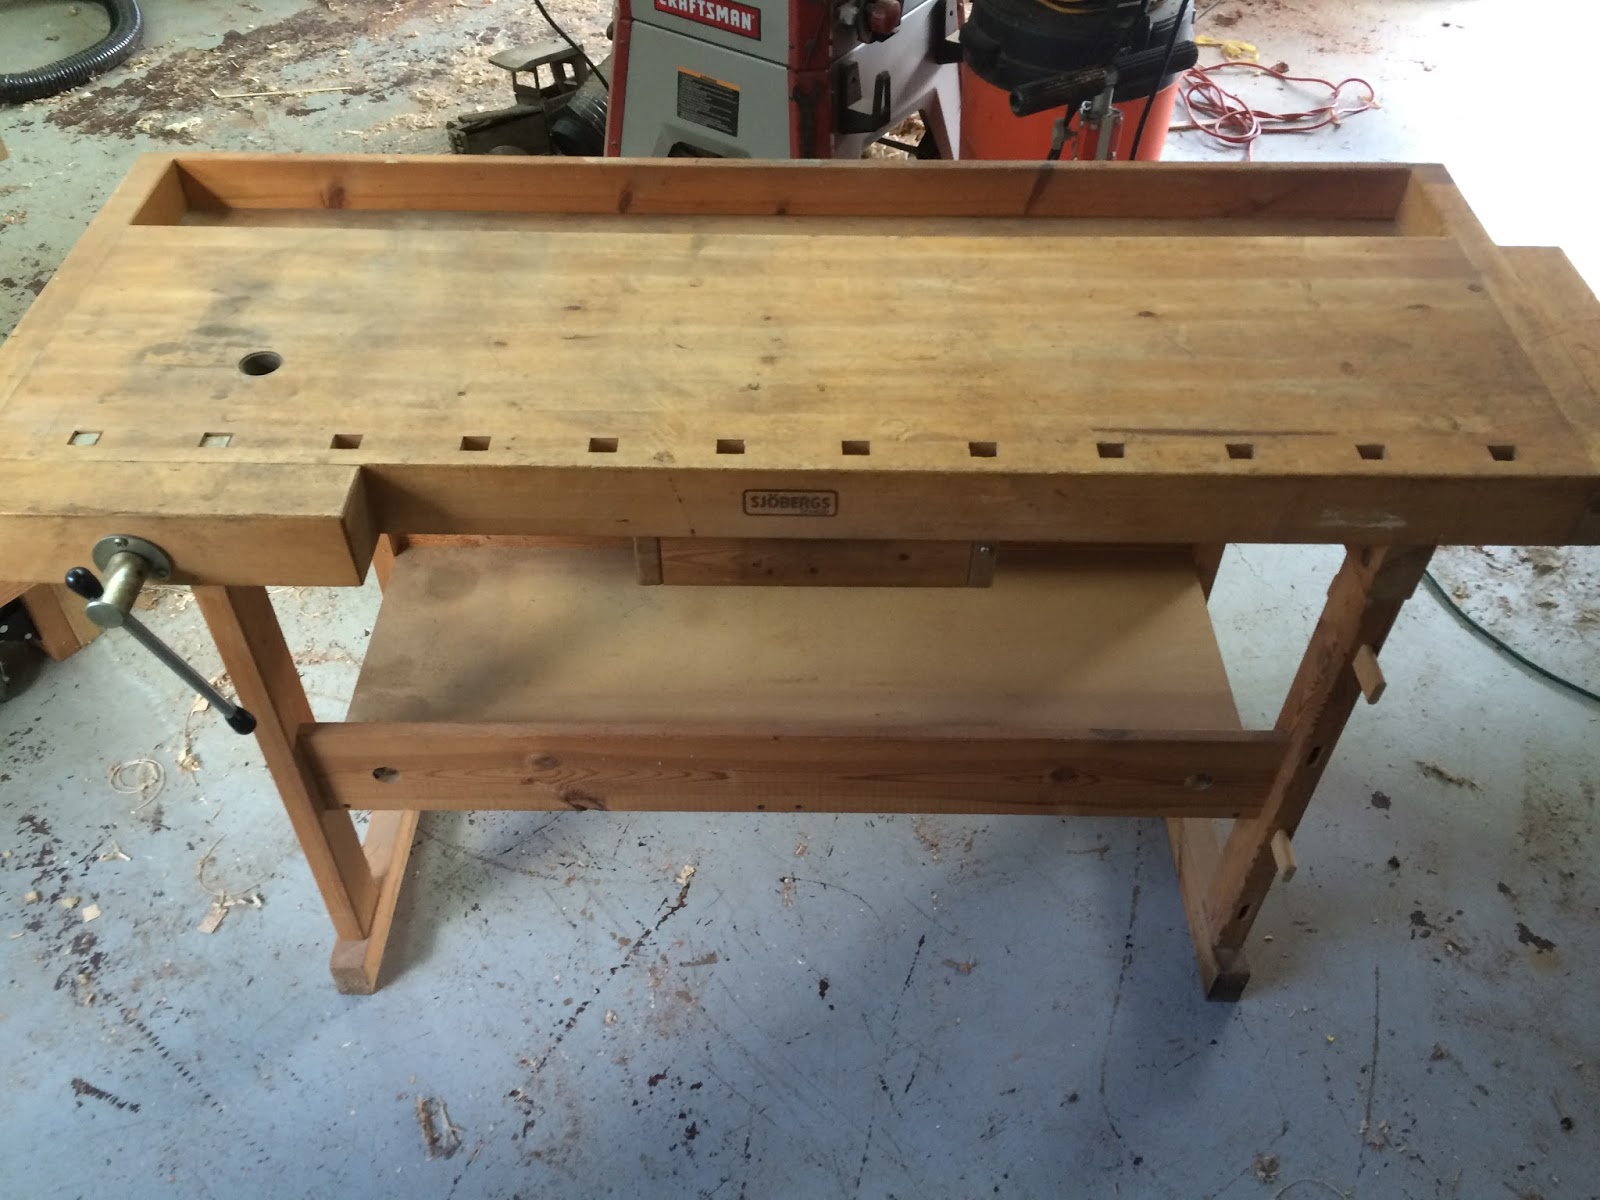 Willow Wood Shop: New Sjoberg shop workbench